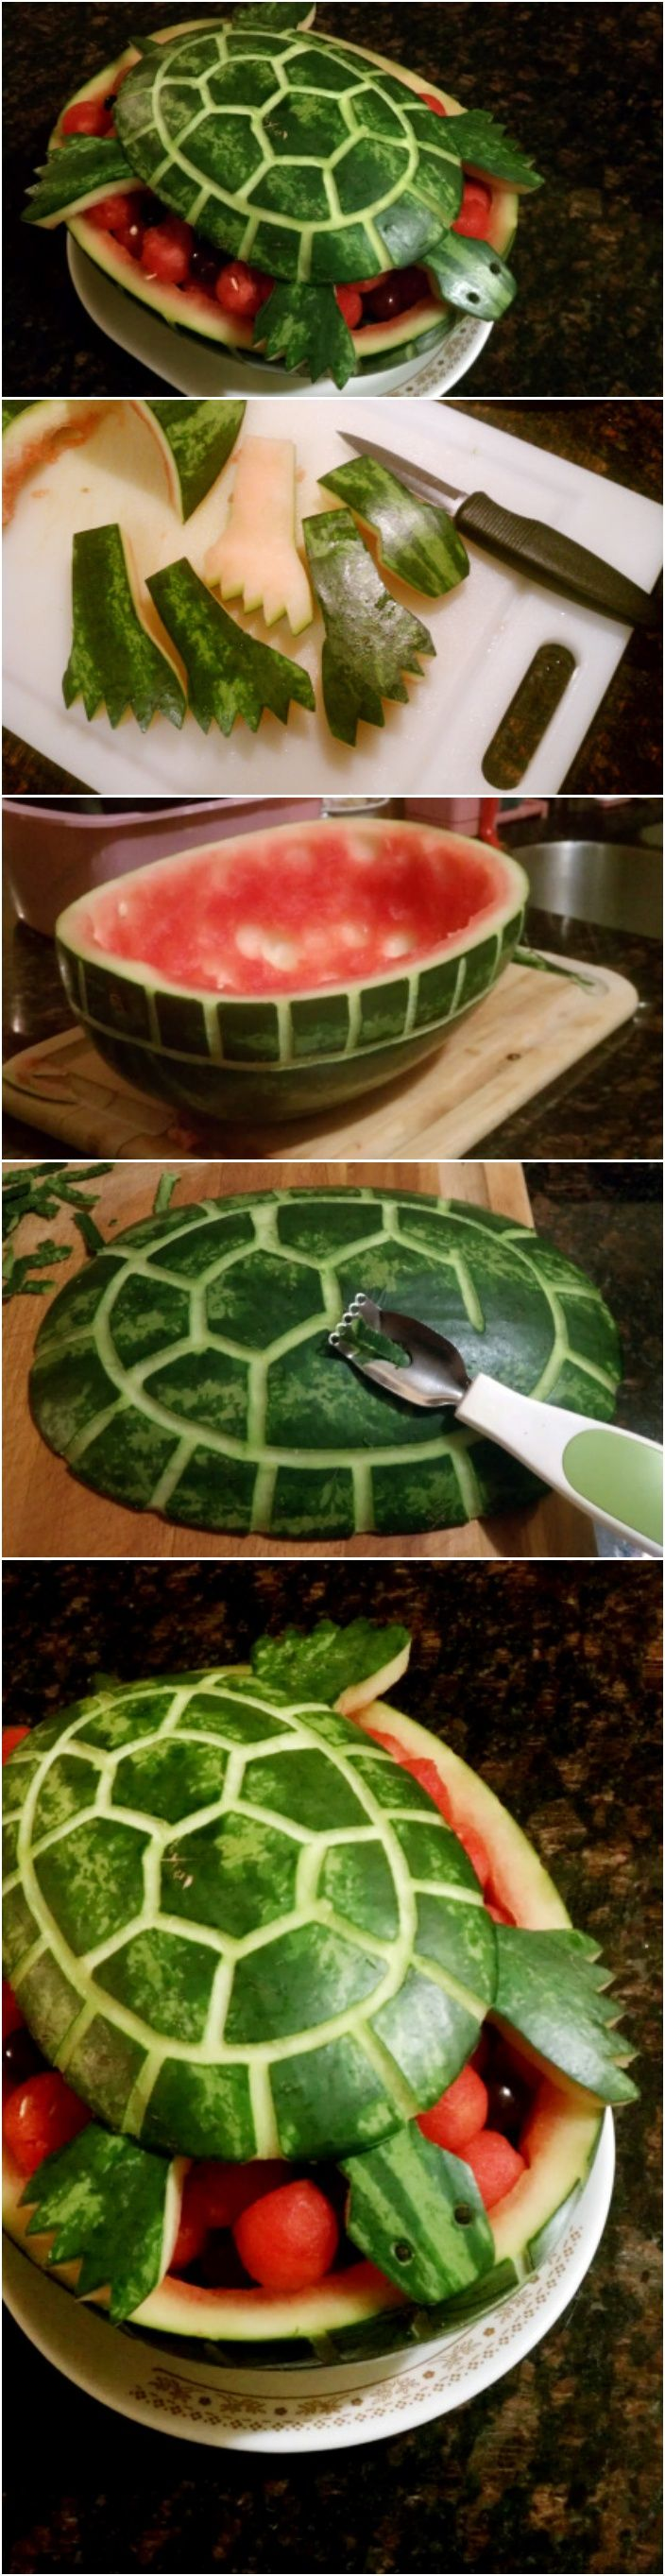 #Watermelon Turtle #Carving